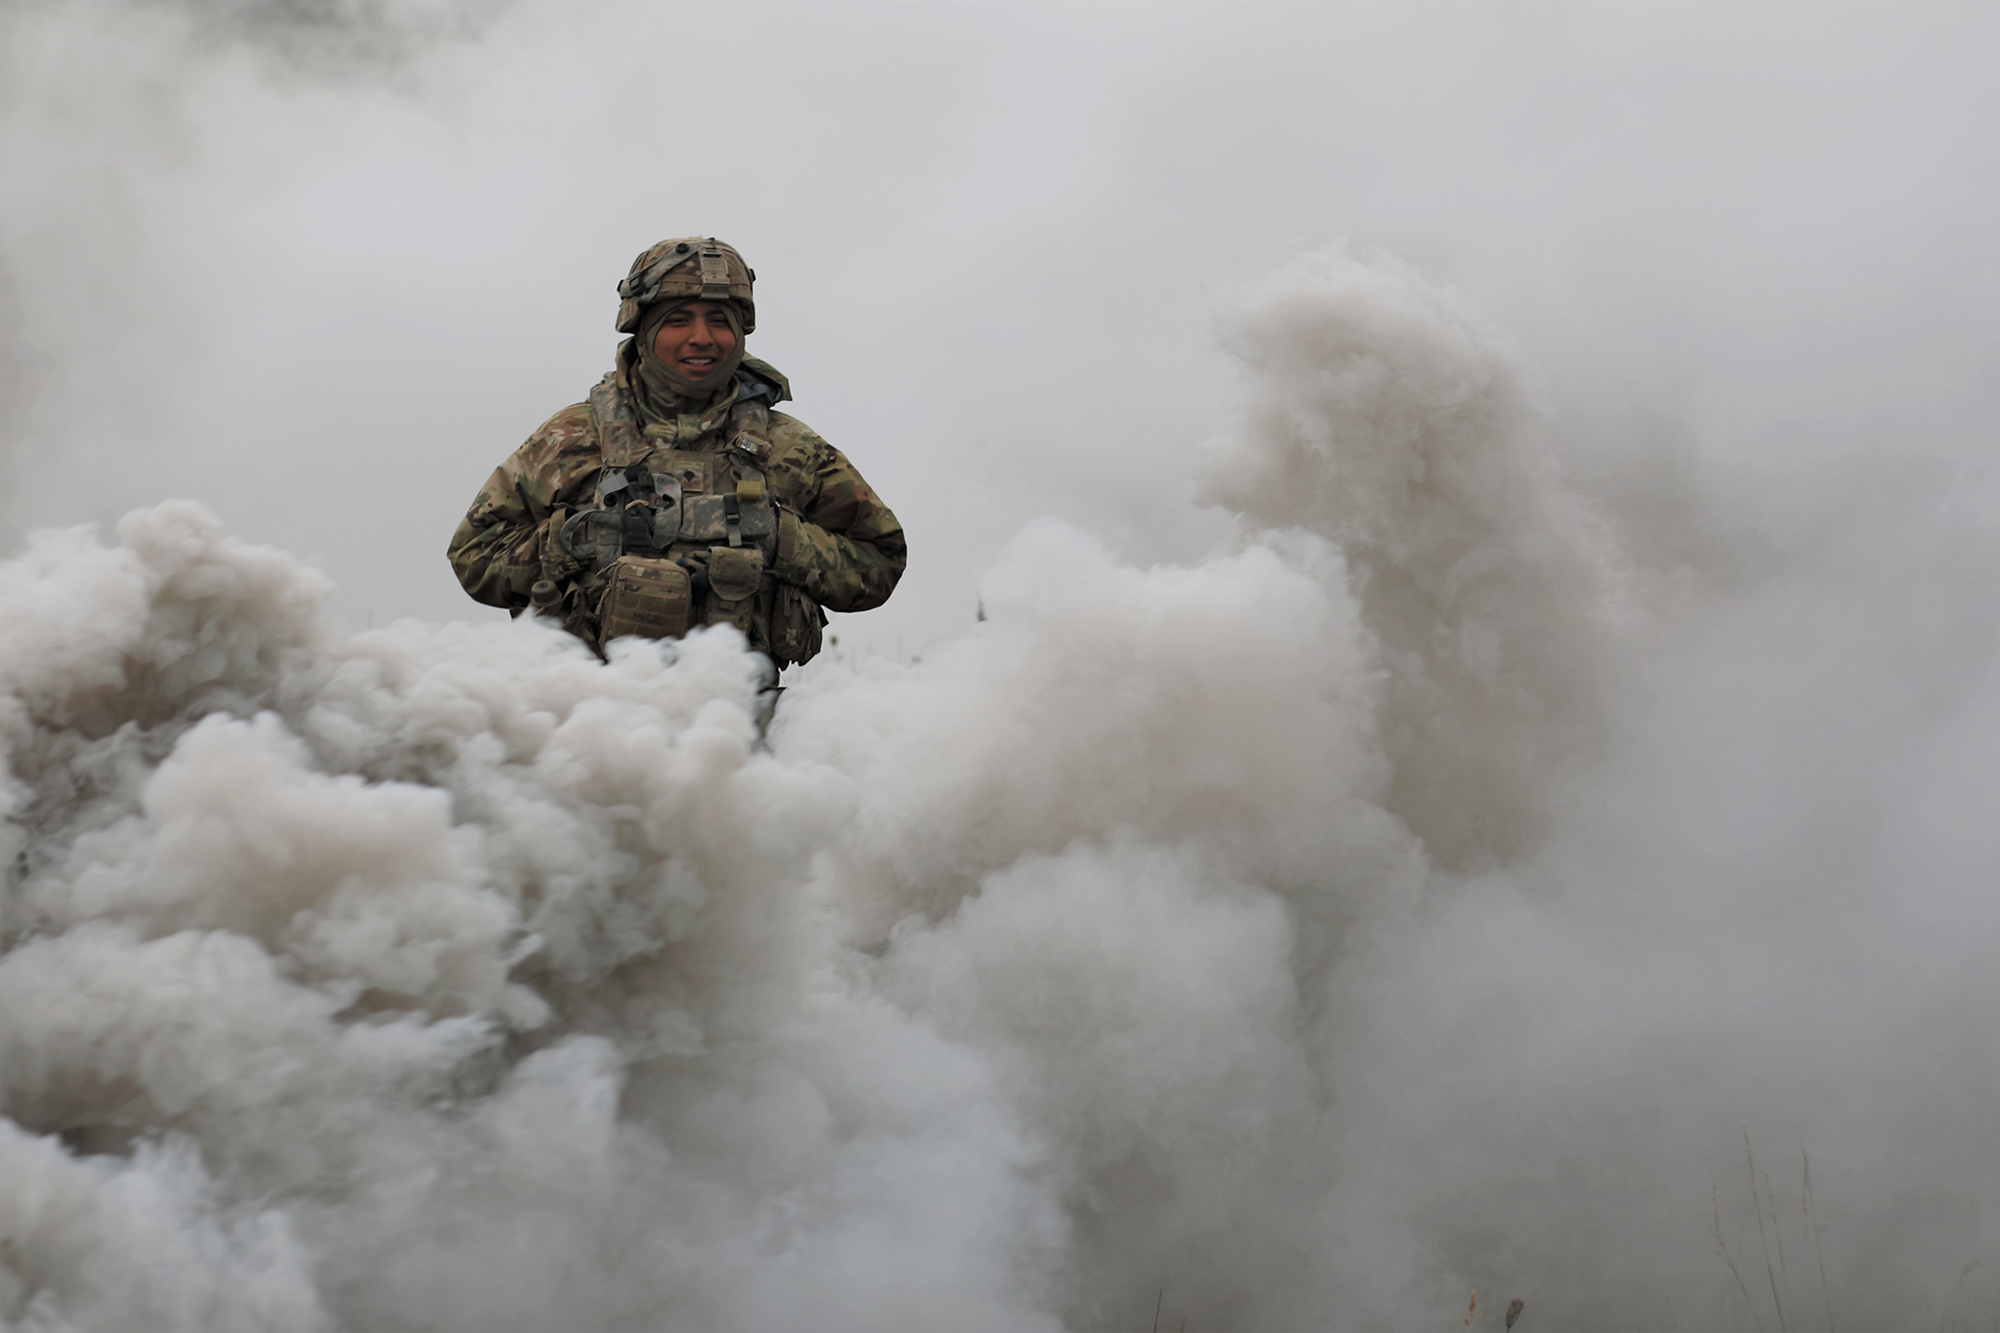 A soldier assigned to 3rd Battalion, 67th Armor Regiment walks through smoke on the battlefield on Sept. 26, 2020, at Hohenfels Training Area, Germany, as part of Combined Resolve XIV. (Dr. Joyce Costello/Army)